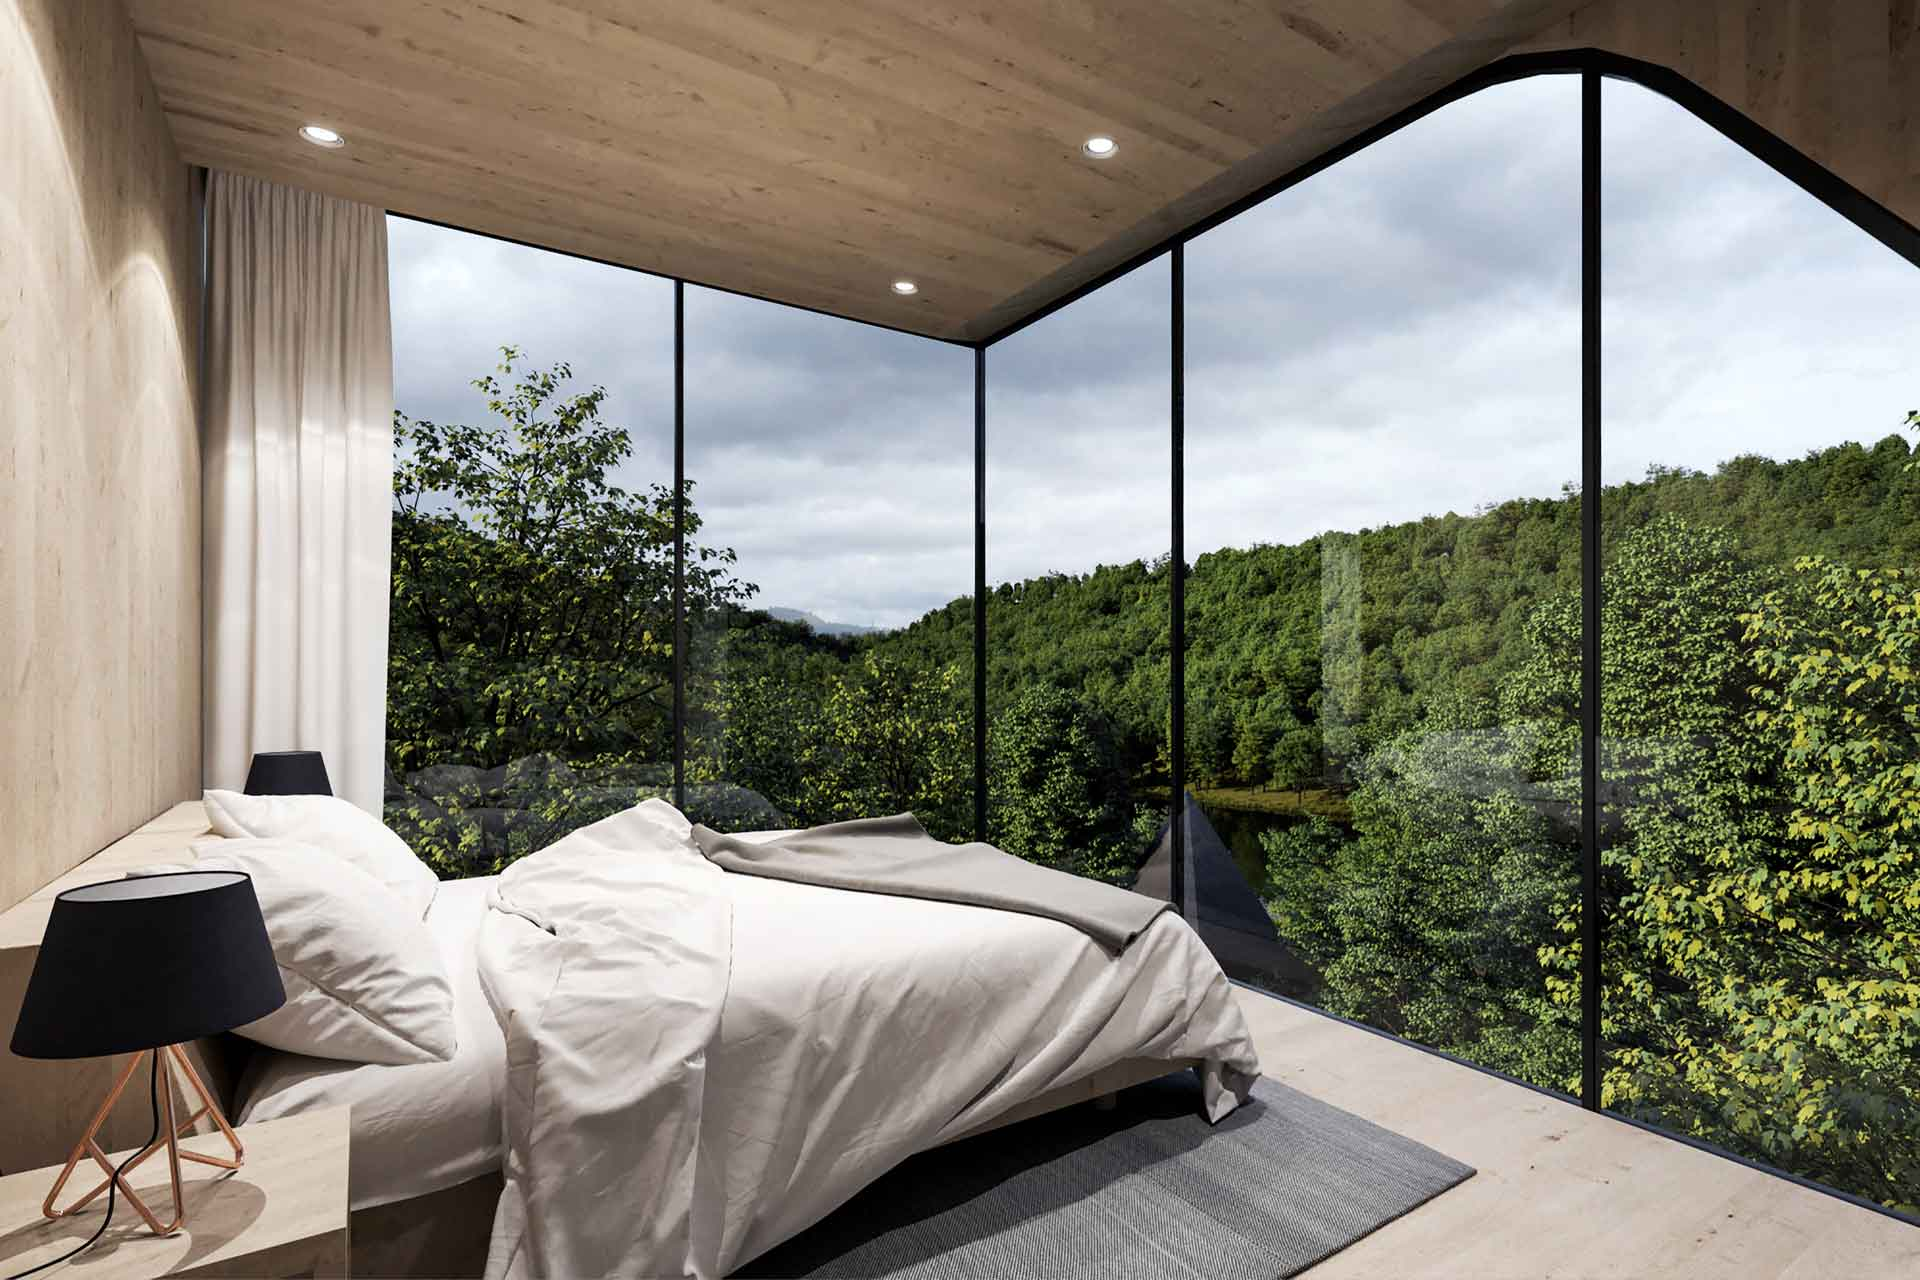 Interior space of Peter Pichler's Tree House